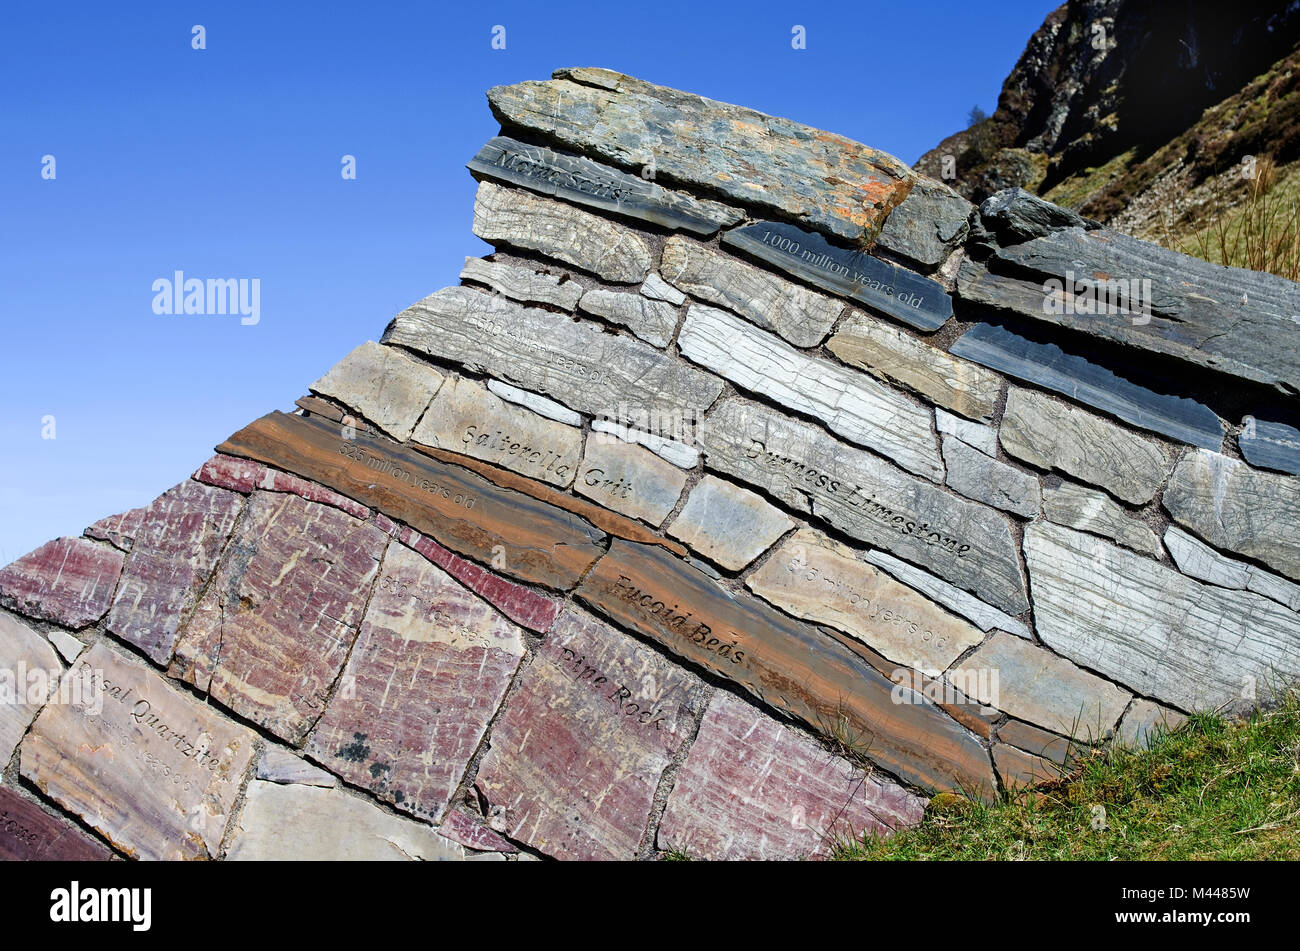 Installation at Knockan Crag explaining  the Moine Thrust, a geological event when older rocks were thrust upwards - Stock Image